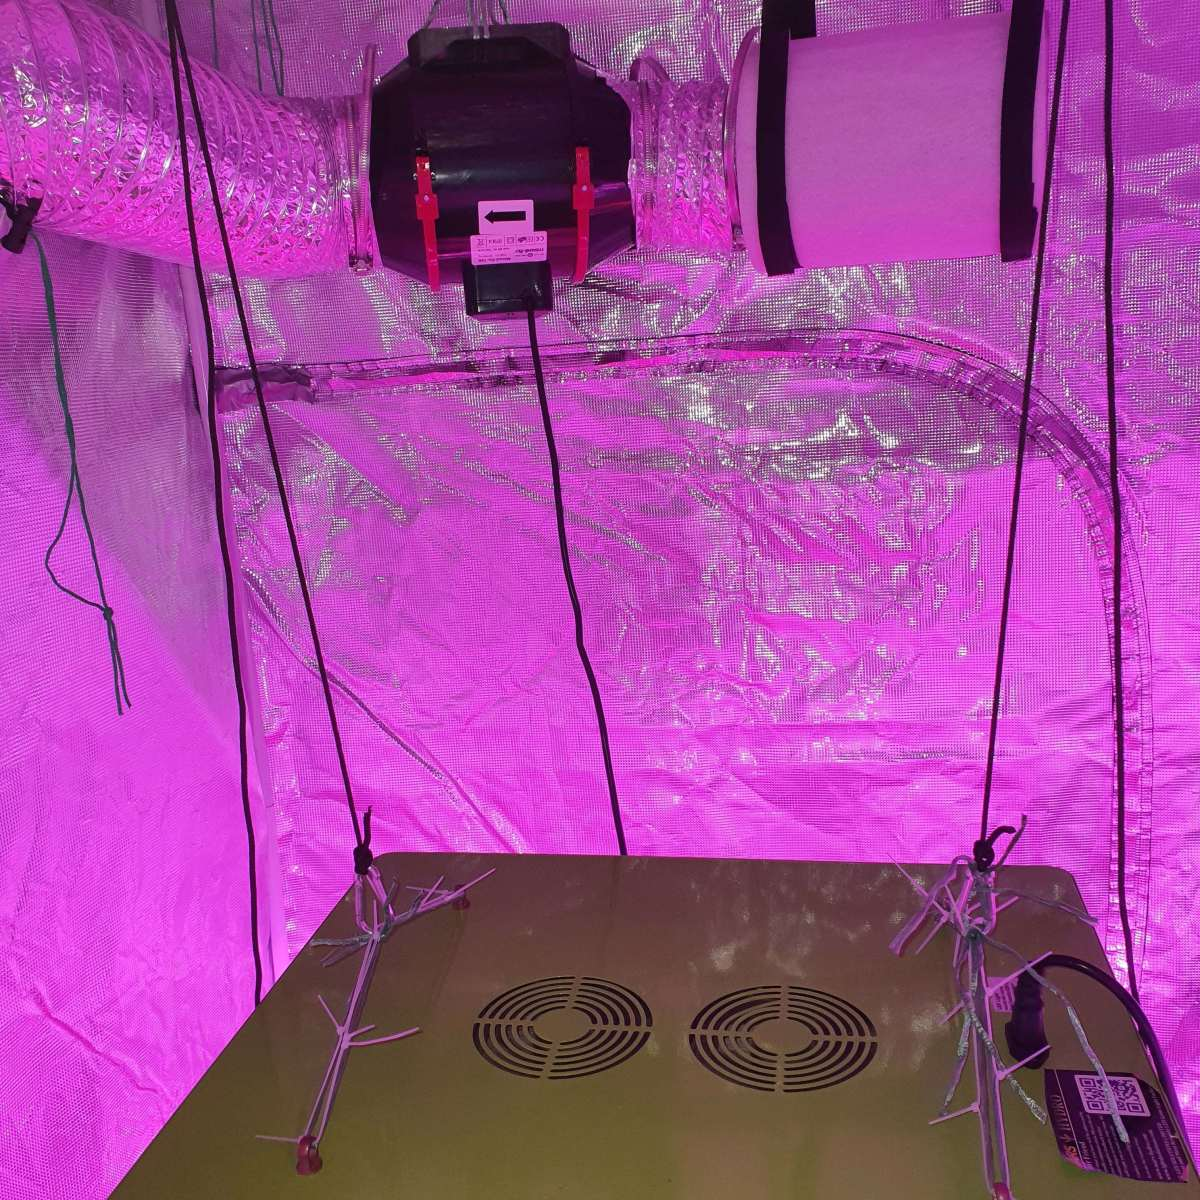 Carbon Filter and Exhaust Fan for Indoor Grow Tent.